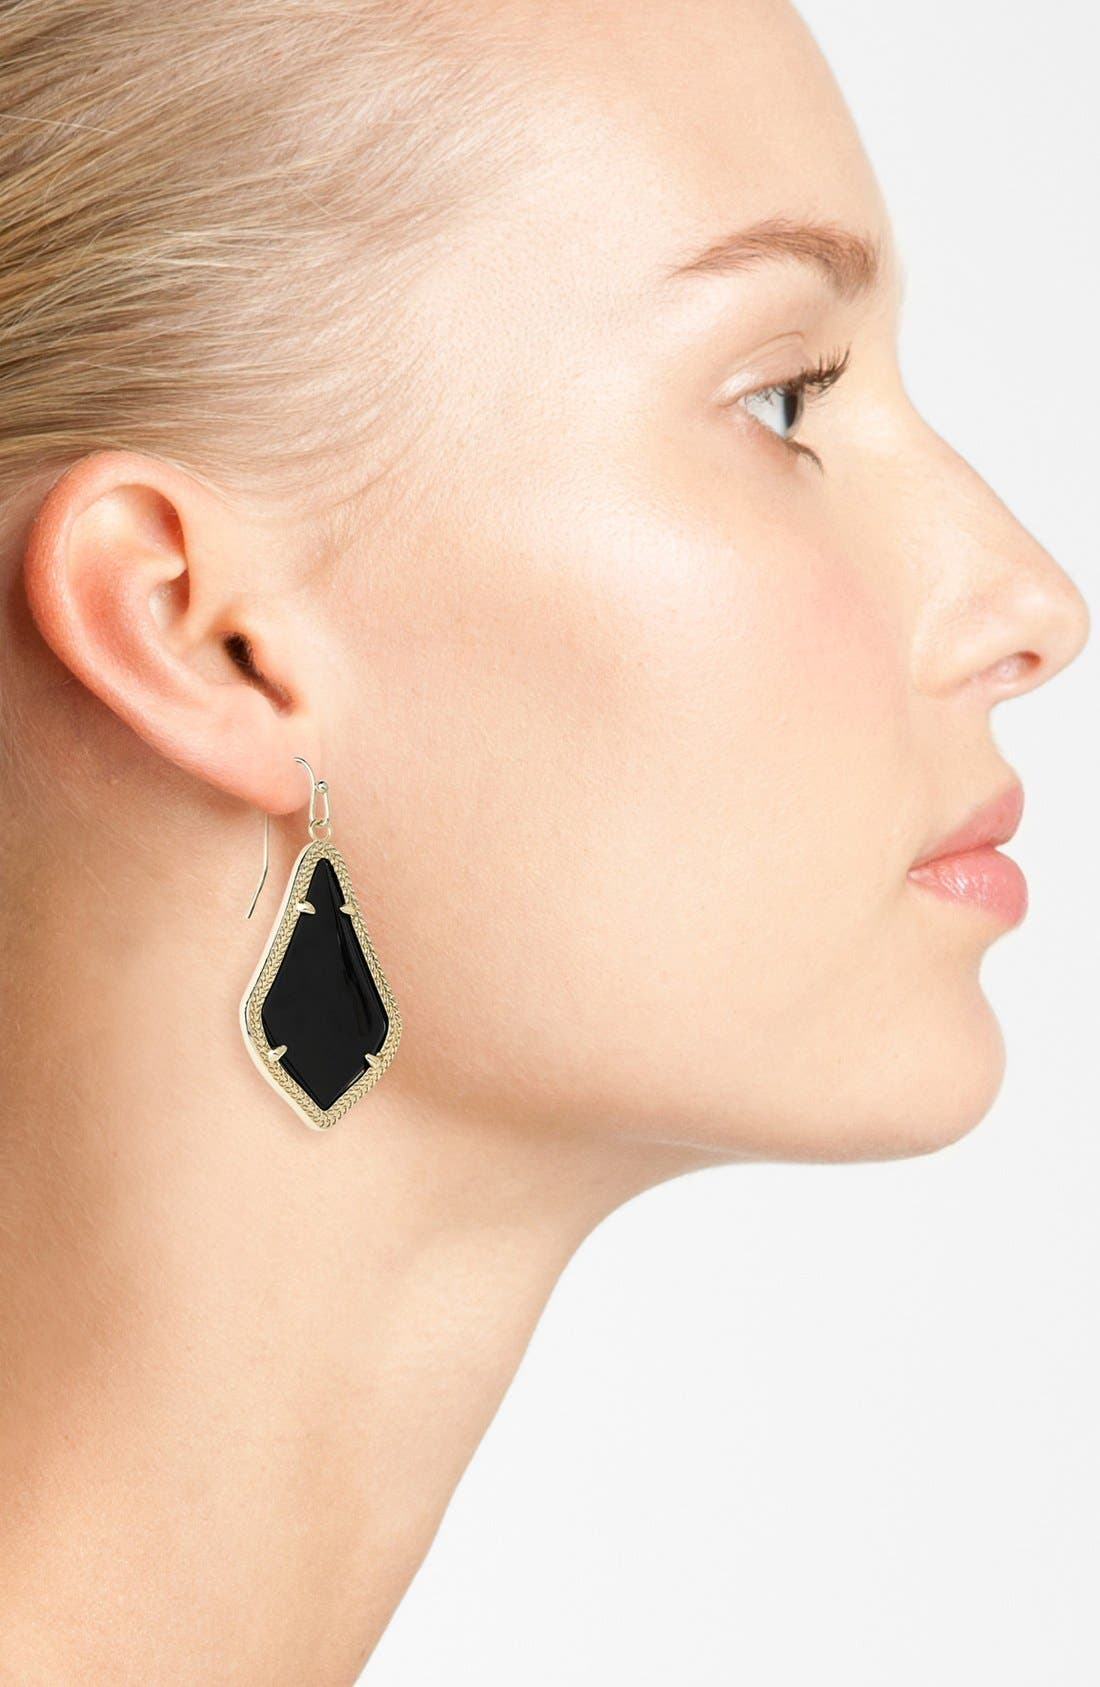 Alex Drop Earrings,                             Alternate thumbnail 2, color,                             002